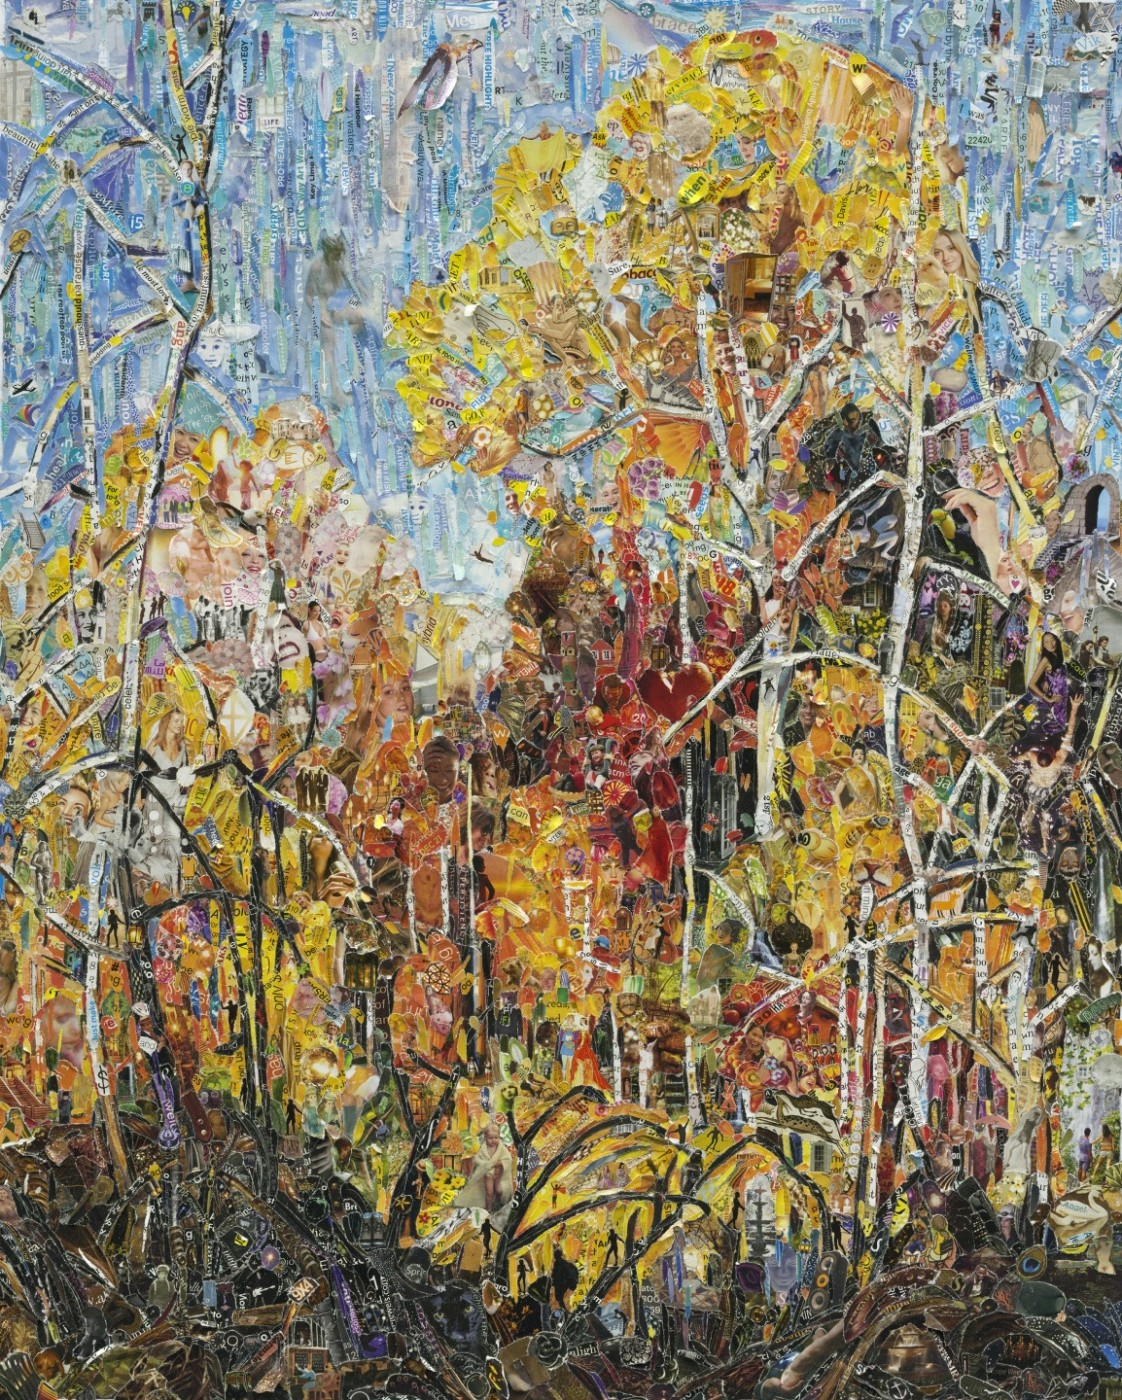 Autumn - Orillia, after Franklin Carmichael